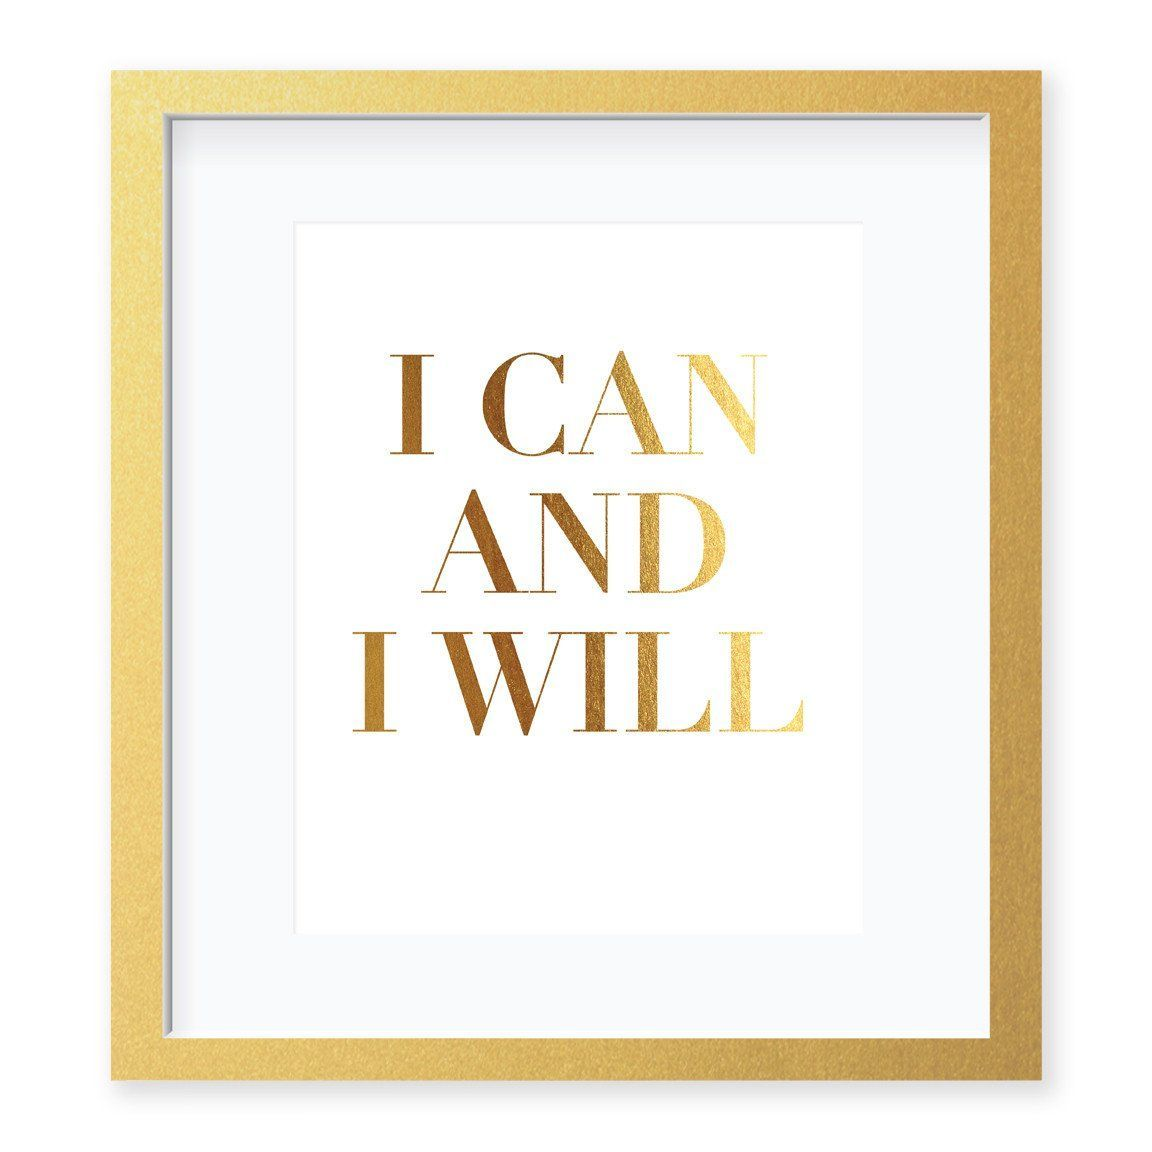 I Can and I Will Gold Foil Art Print Real gold foil